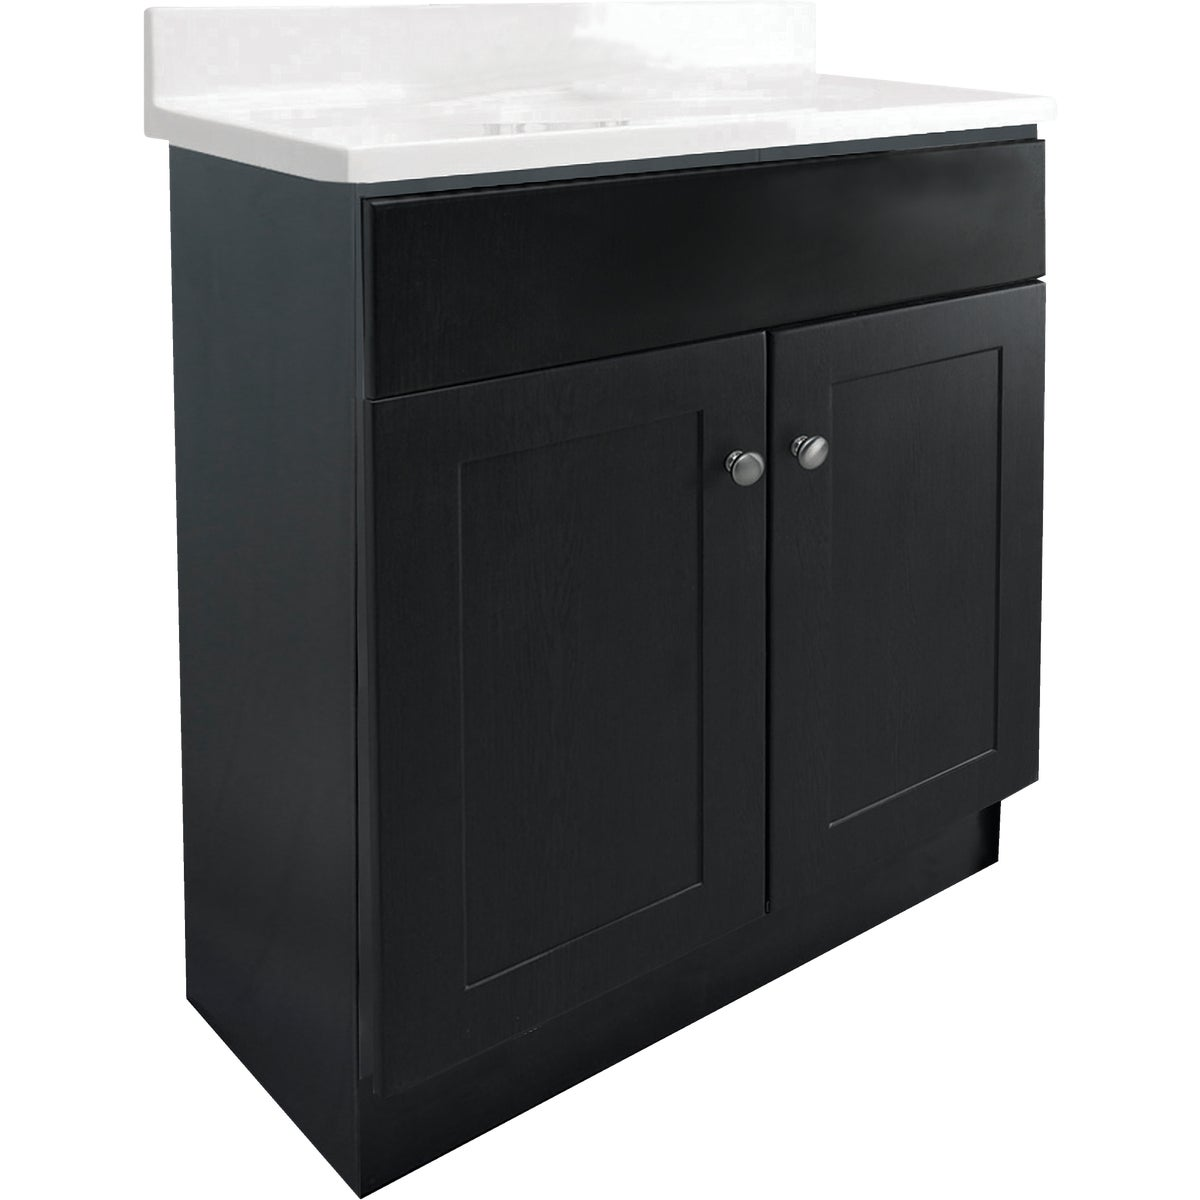 OAK COMBO VANITY - 545566 by Design House  Dhi